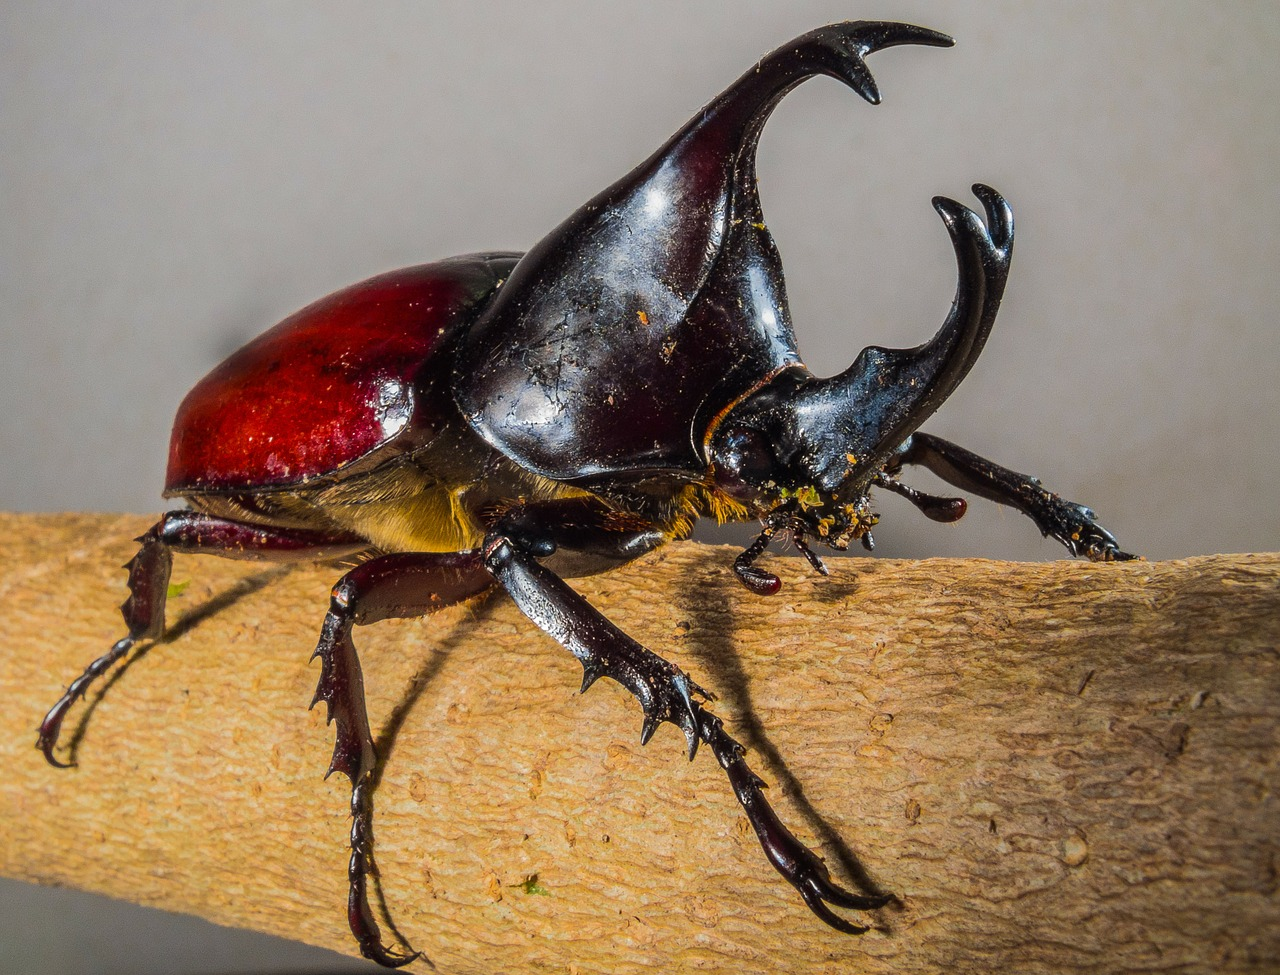 tropical beetles,rhinoceros beetle,riesenkaefer,free pictures, free photos, free images, royalty free, free illustrations, public domain